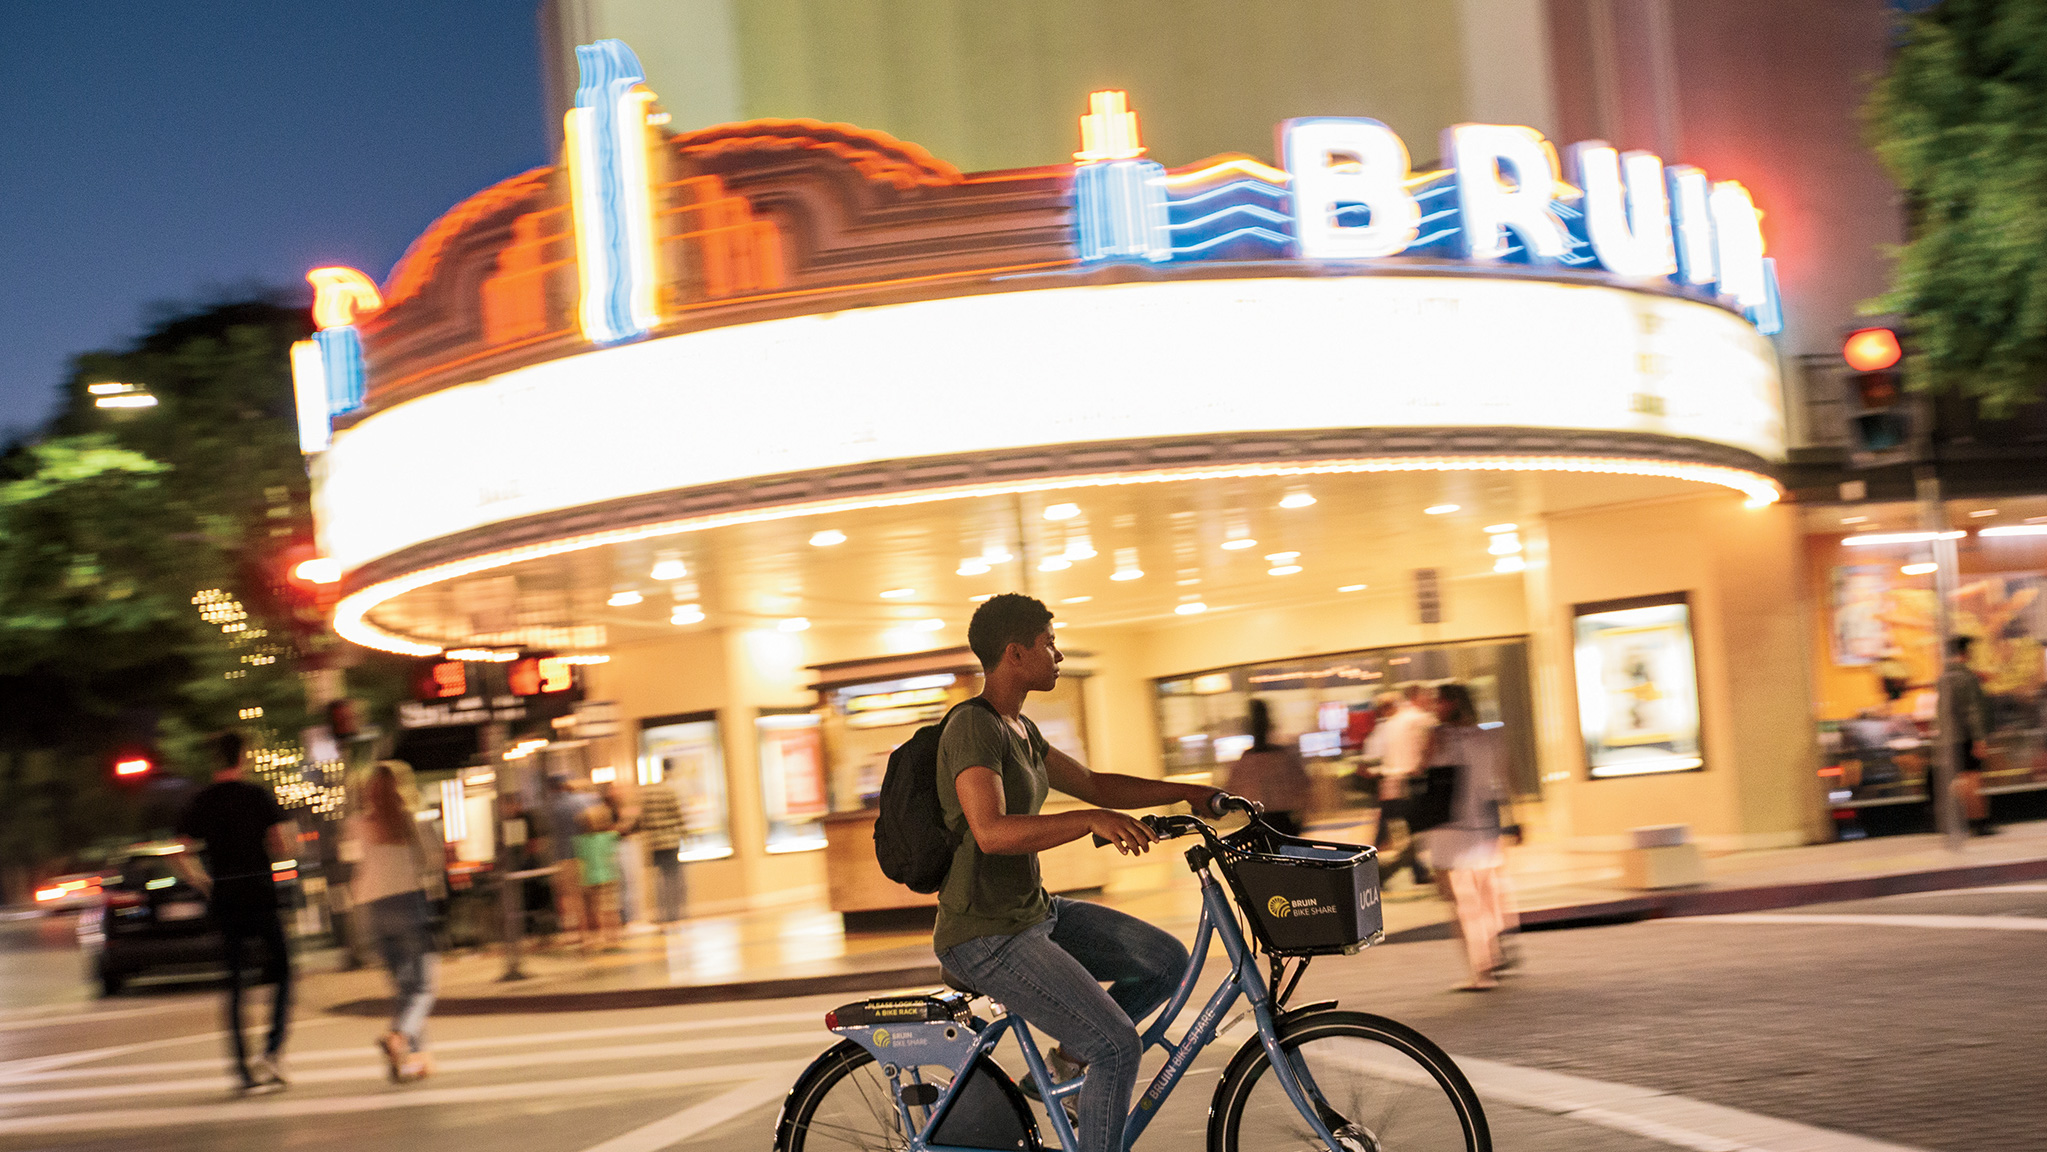 A bike rider passes by the Bruin Theater in Westwood at night.